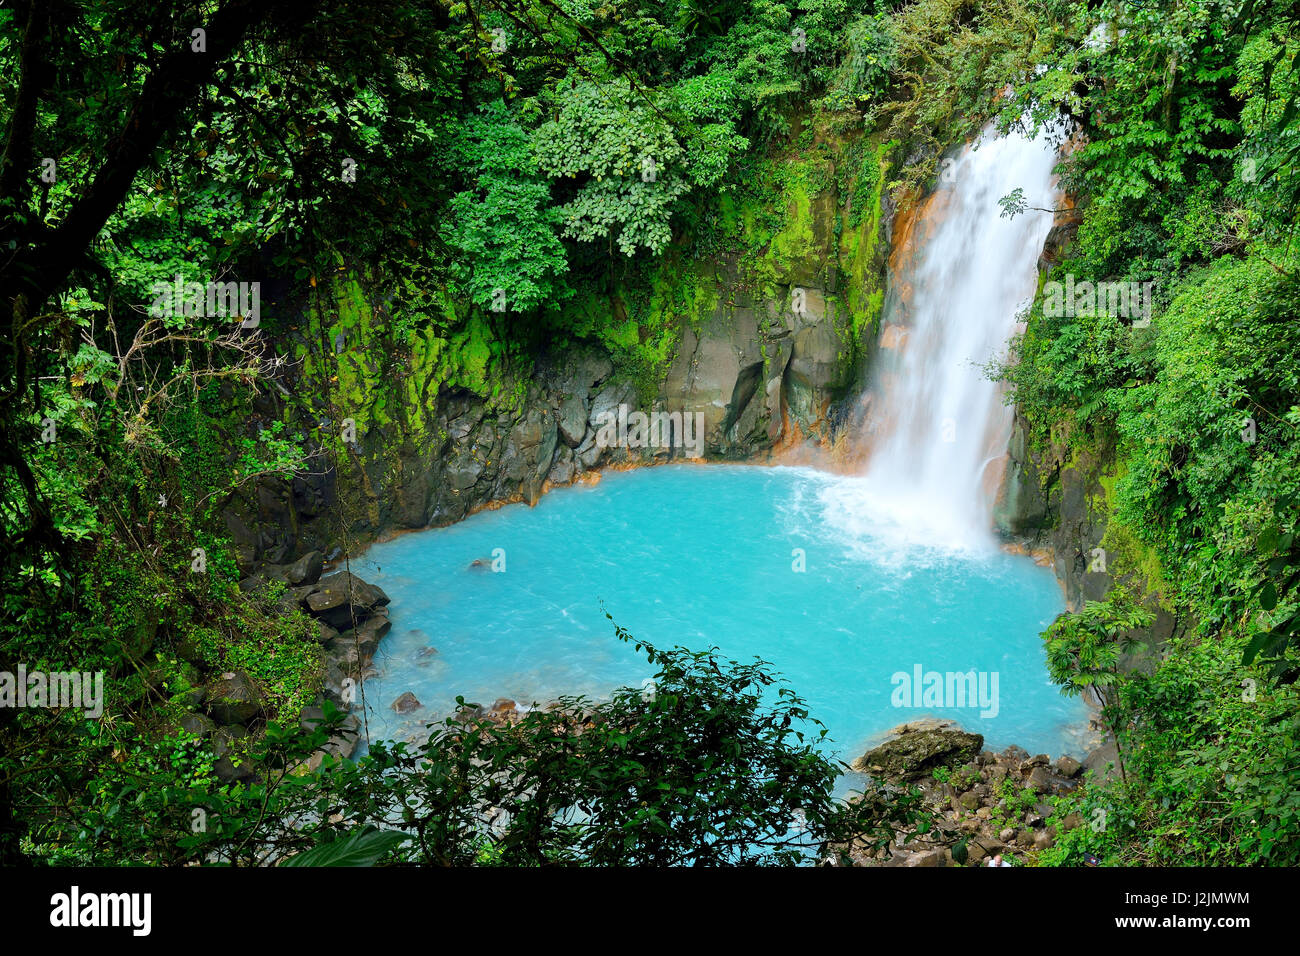 Waterfall with the blue waters of the Rio Celeste in Volcán Tenorio National Park, Costa Rica, Central America - Stock Image